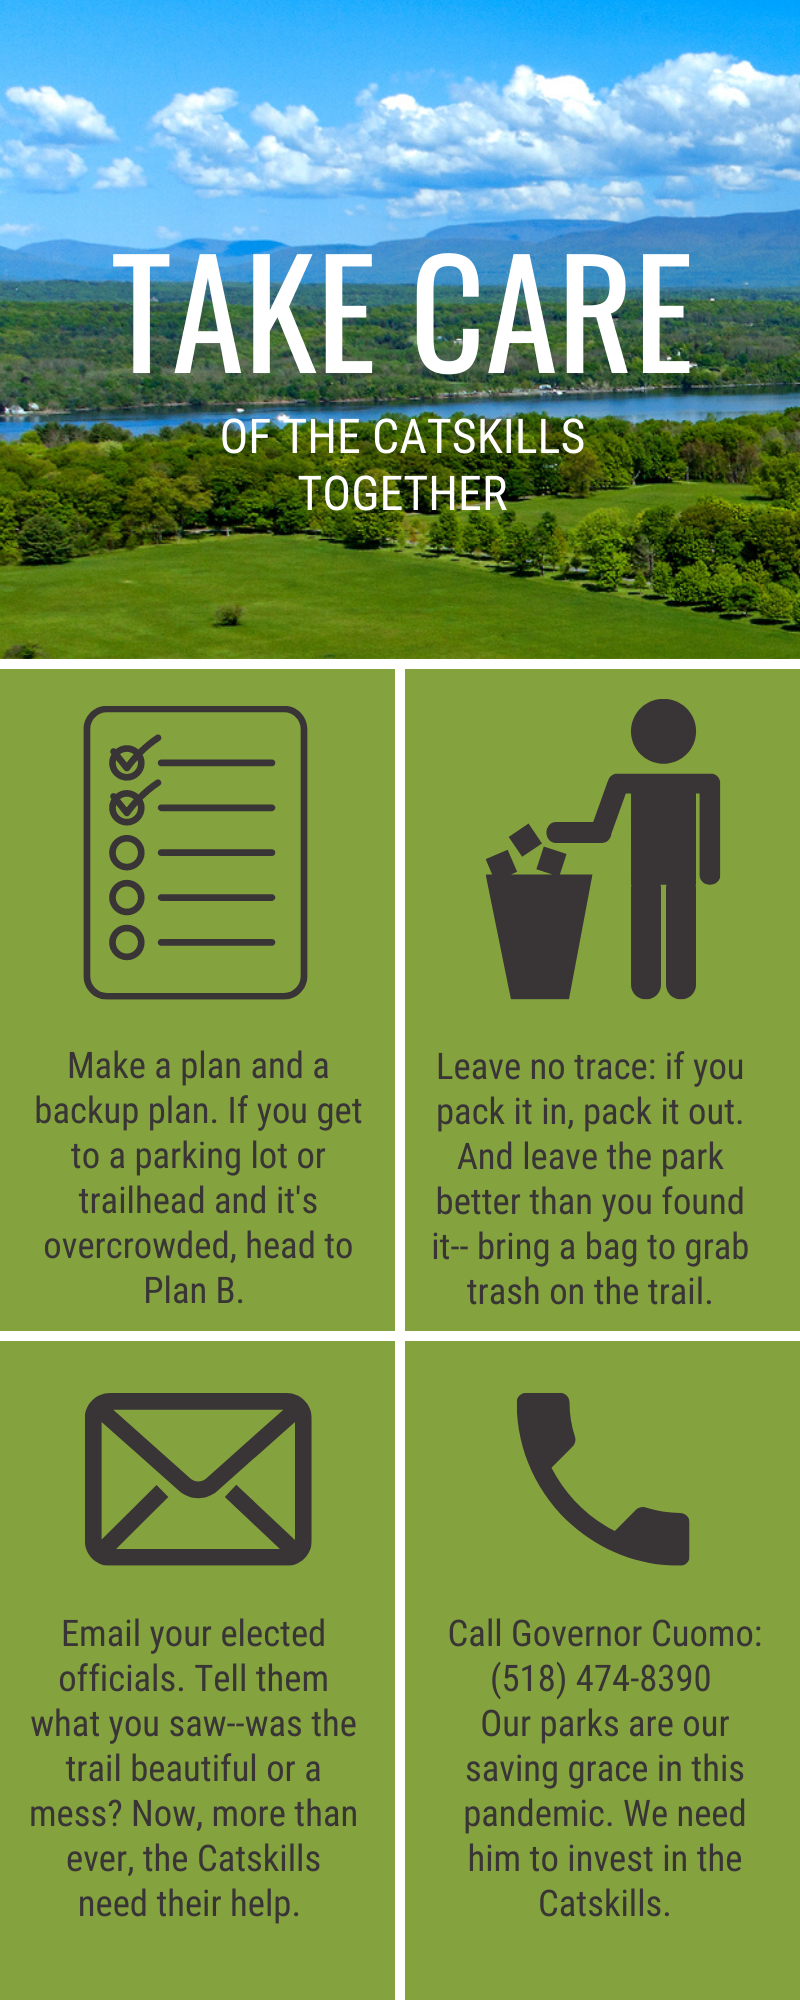 Infographic. Top panel: Take Care of the Catskills Together written over a vista of the Catskills. Middle right panel: Make a plan and a backup plan. If you get to a parking lot or trailhead and it's overcrowded, head to Plan B. Middle right panel: Leave no trace. If you pack it in, pack it out. and leave the park better than you found it--bring a bag to grab trash on the trail. Bottom left panel: Email your elected officials. Tell them what you saw--was teh trail beautiful or a mess? Now, more than ever, the Catkills need their help. Bottom right panel: Call Governor Cuomo: (518) 474-8390. Our parks are our saving grace in this pandemic. We need him to invest in the Catskills.